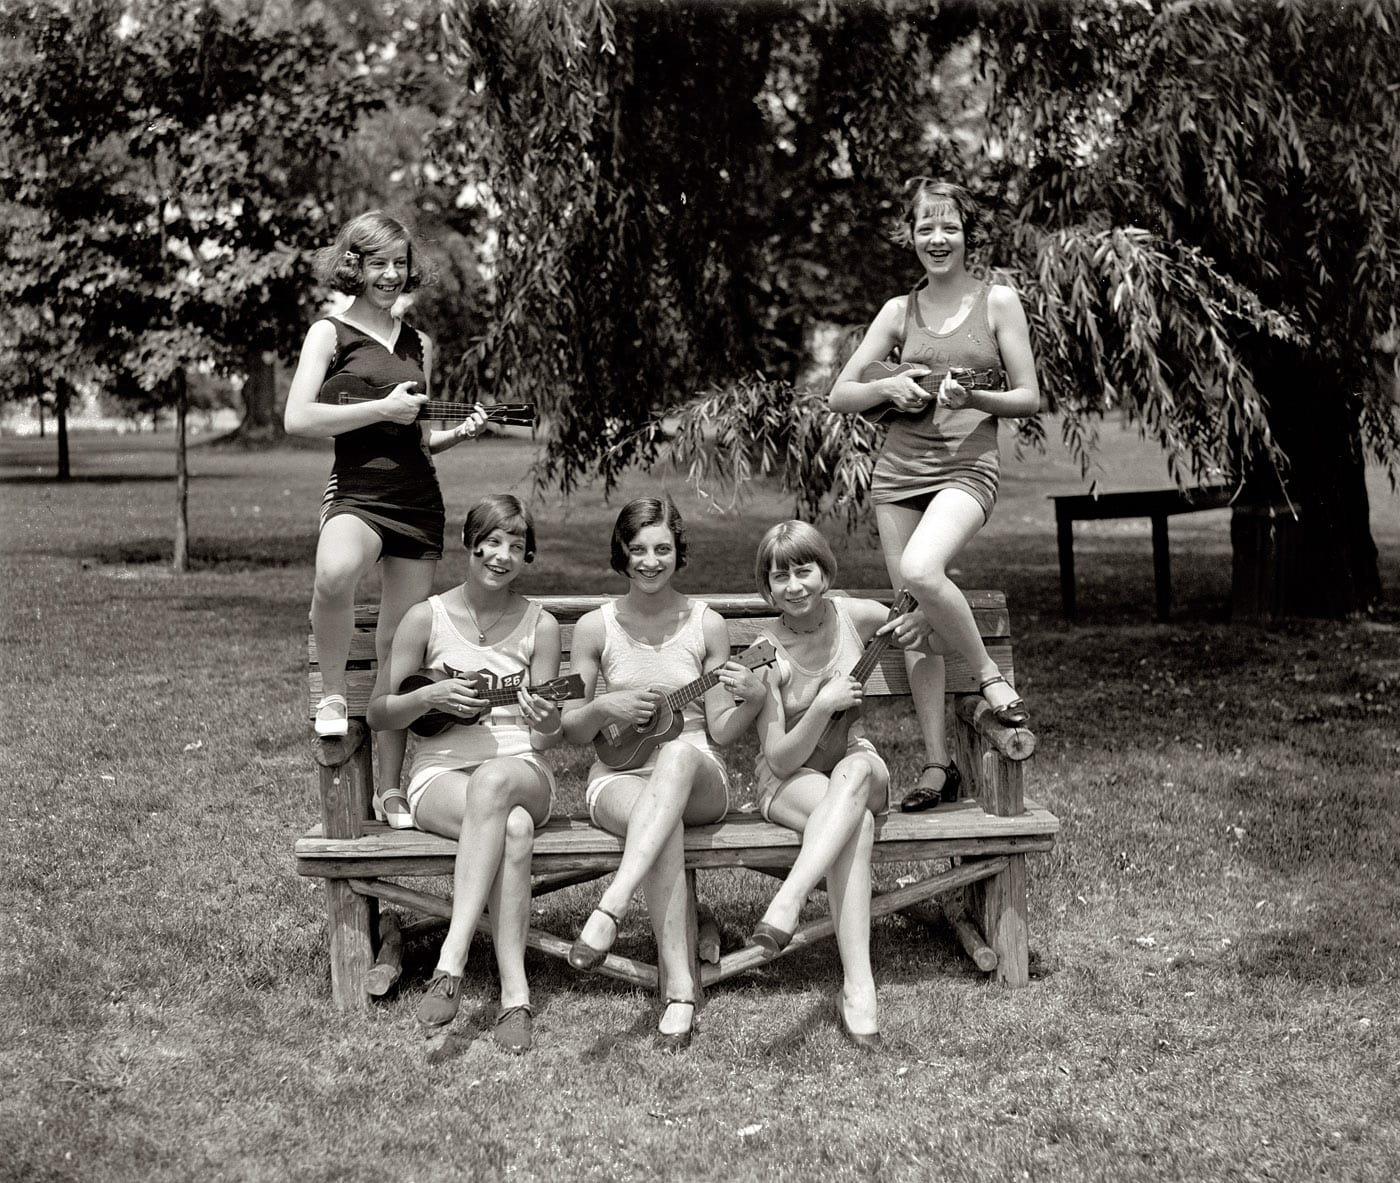 "July 9, 1926. Washington, D.C. ""Girls in bathing suits with ukuleles."" Identified in the caption of another photo as Elaine Griggs, Virginia Hunter, Mary Kaminsky, Dorothy Kelly and Hazel Brown. National Photo Co."